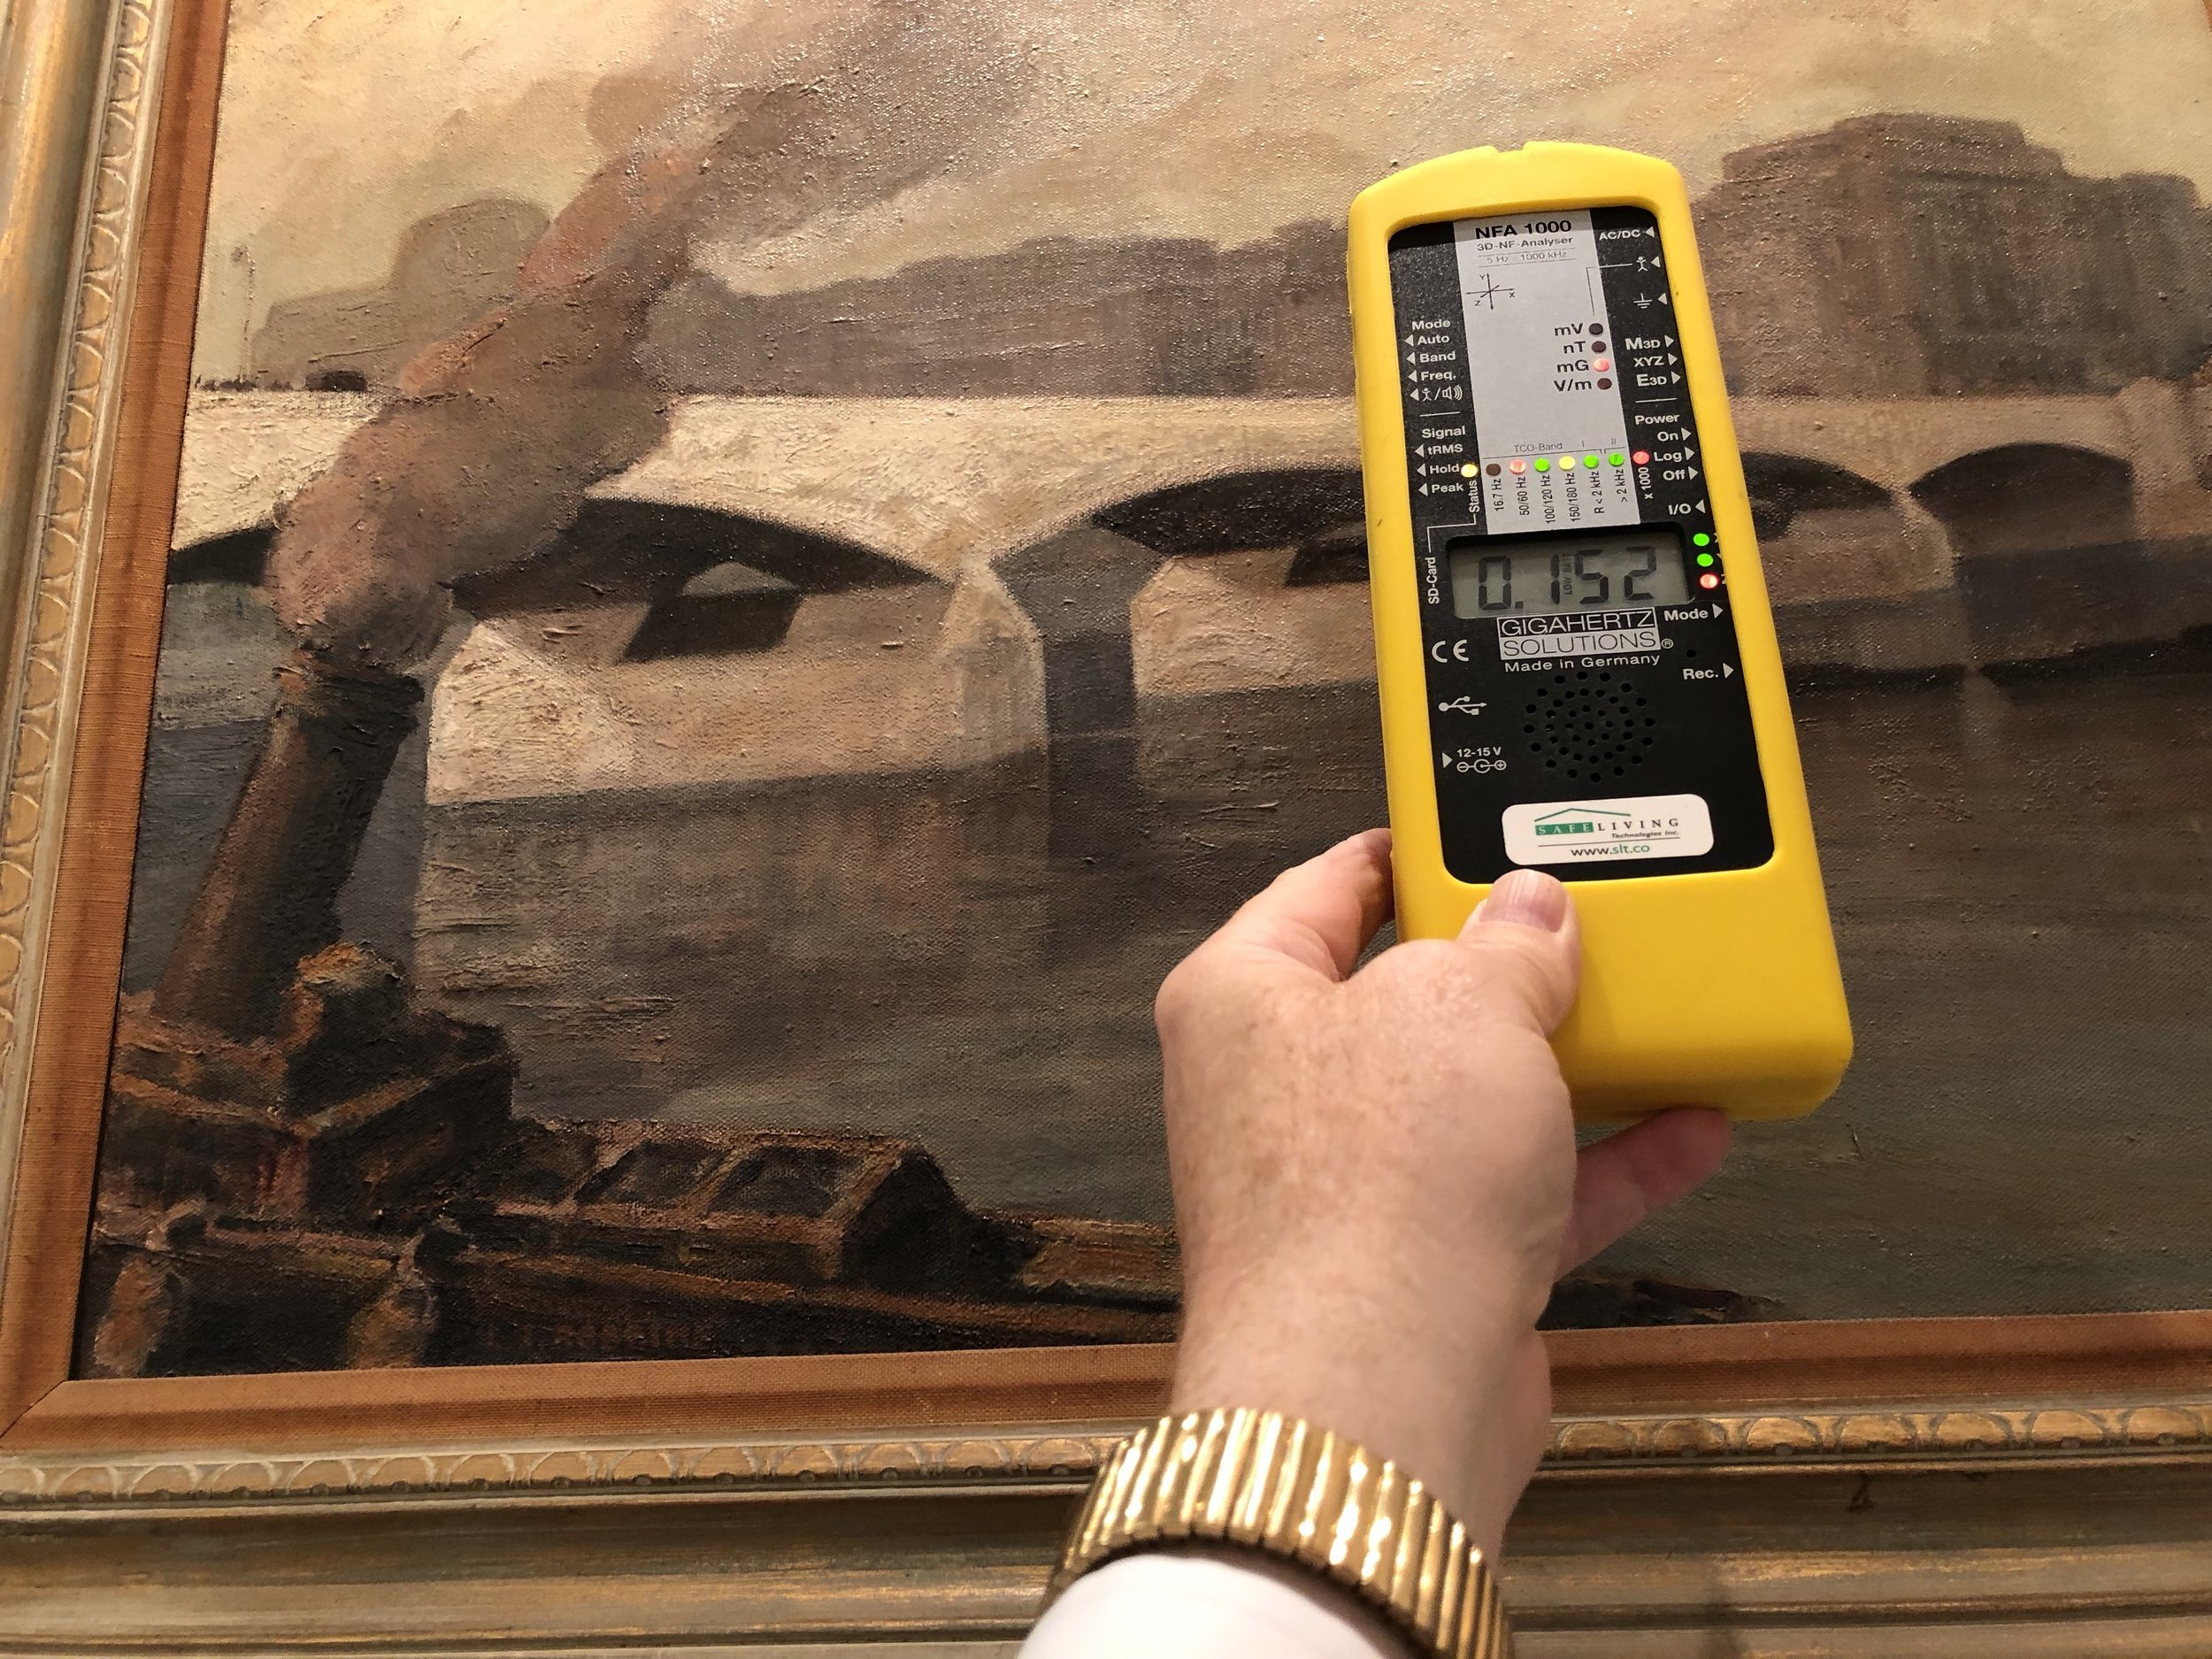 Using a professional gaussmeter, we detected what turned out to be a wiring error behind this painting. We are measuring an ELF (Extremely Low Frequency) 60 Hertz AC Magnetic Field's Flux Density at 152 mG (milligauss) TRMS.